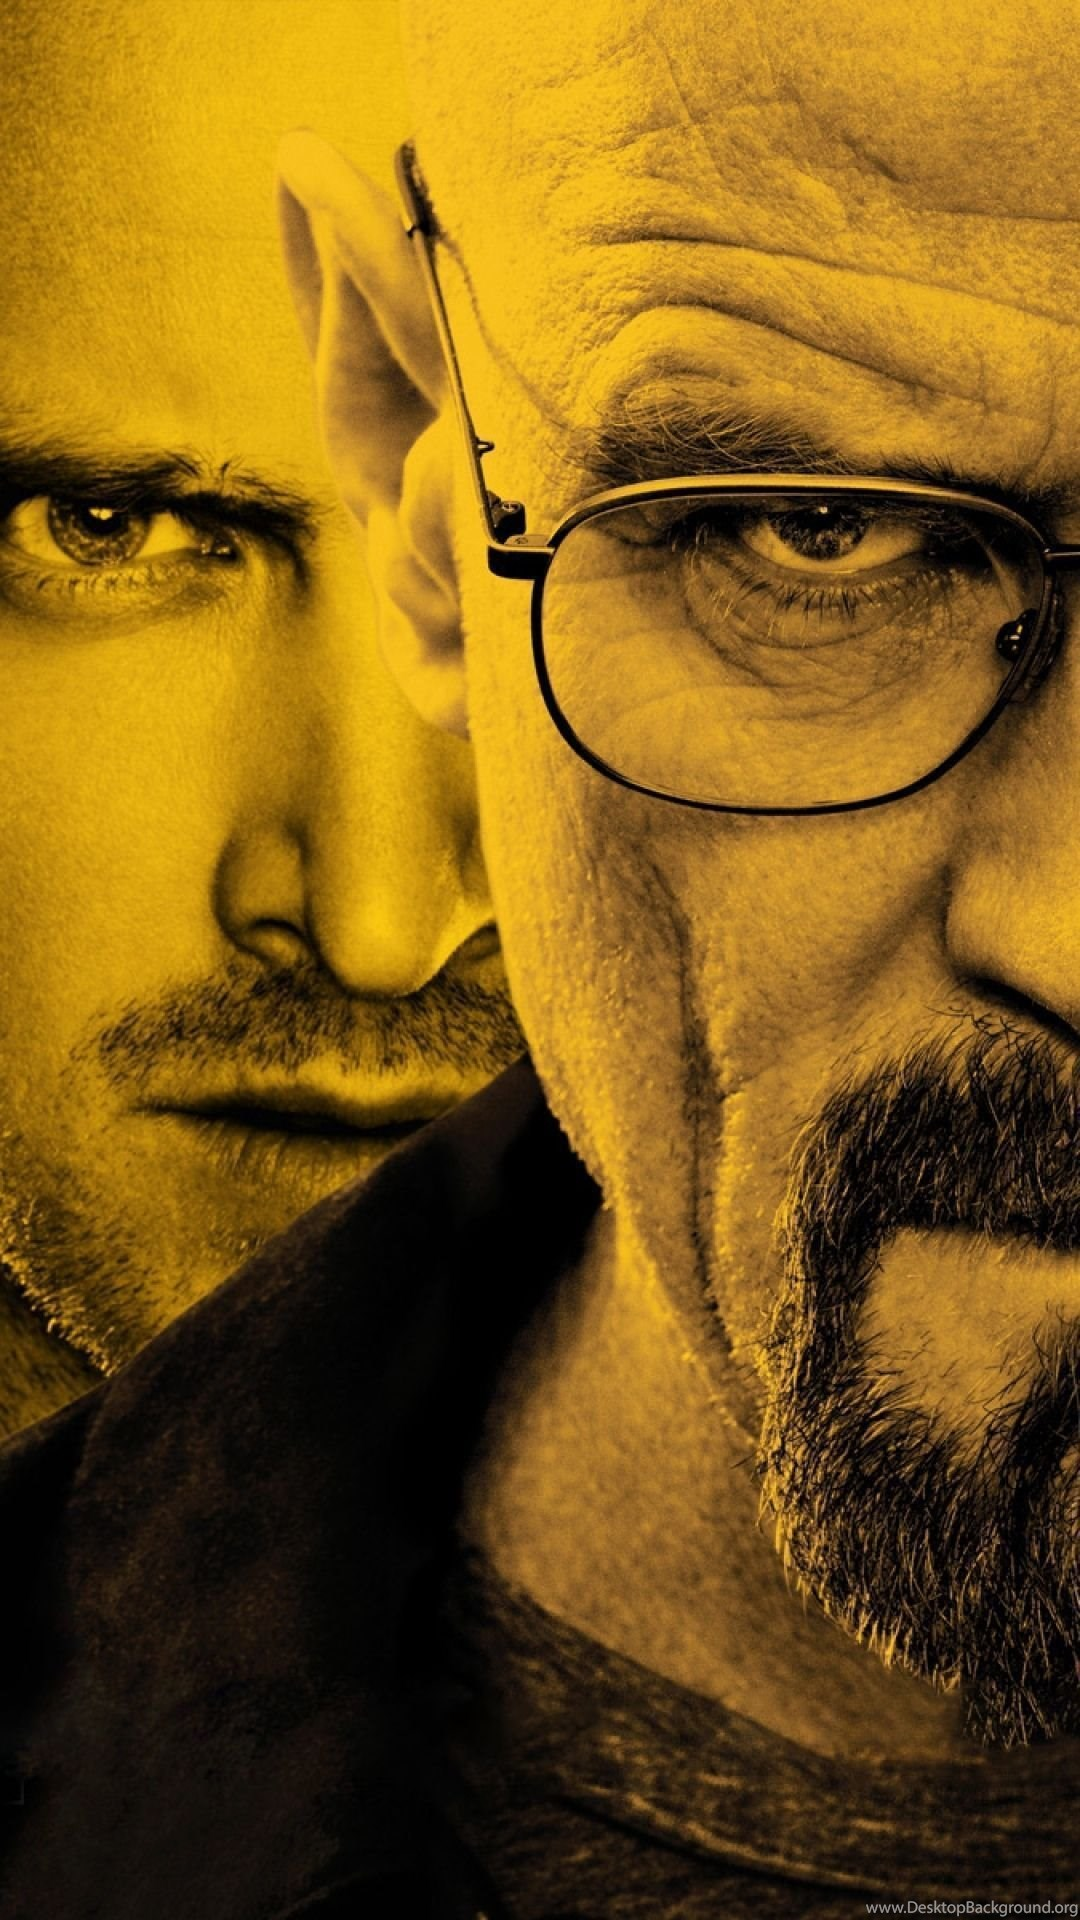 Hd backgrounds breaking bad wallpapers actors face walter white original size 3077kb voltagebd Choice Image